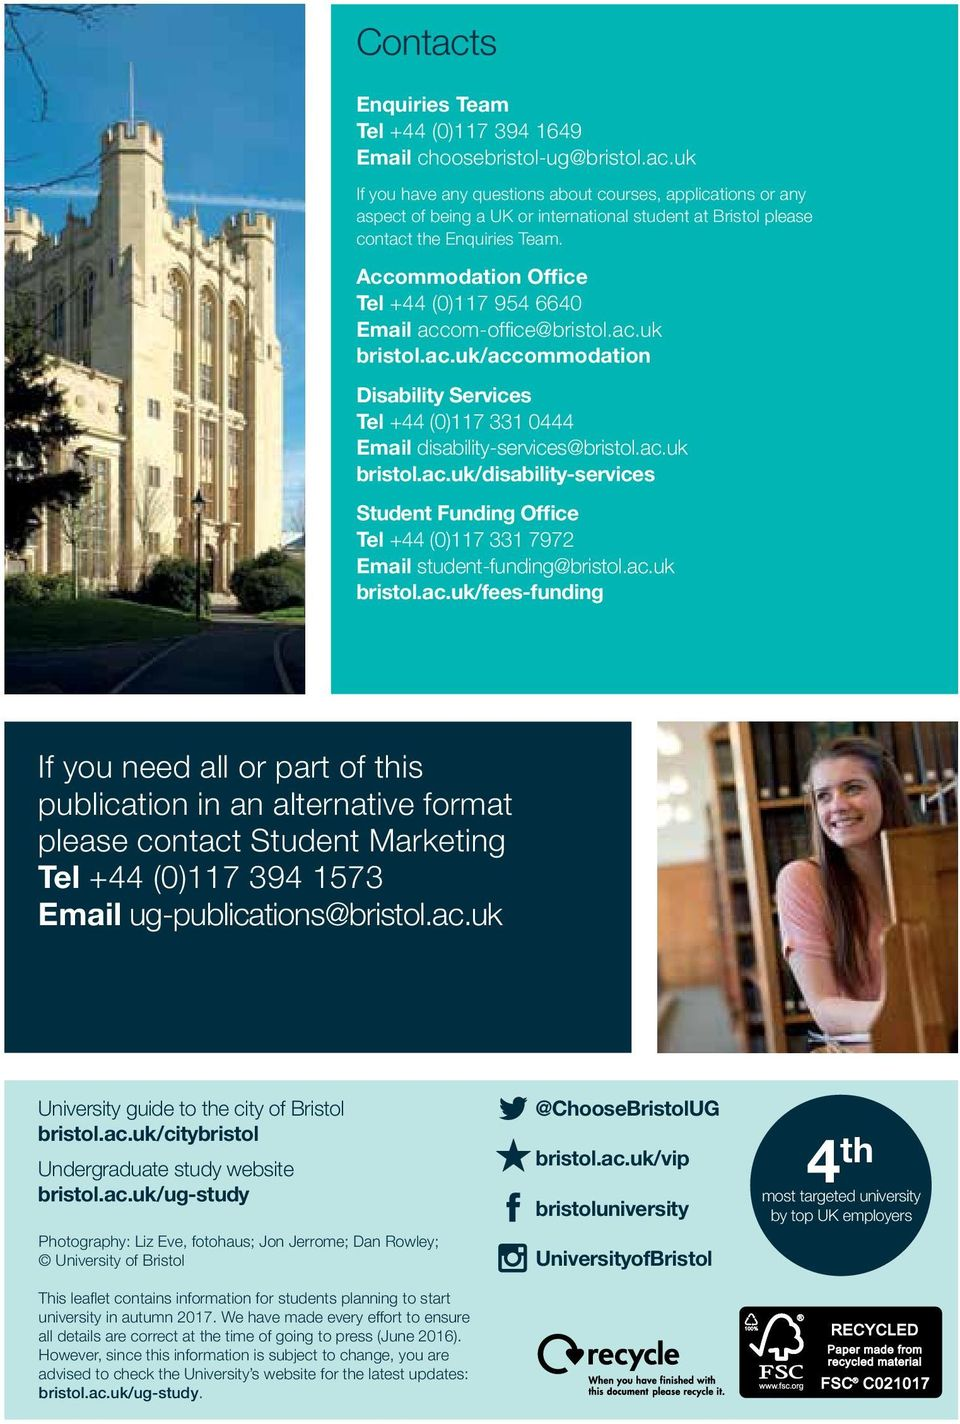 ac.uk bristol.ac.uk/fees-funding If you need all or part of this publication in an alternative format please contact Student Marketing Tel +44 (0)117 394 1573 Email ug-publications@bristol.ac.uk University guide to the city of Bristol bristol.